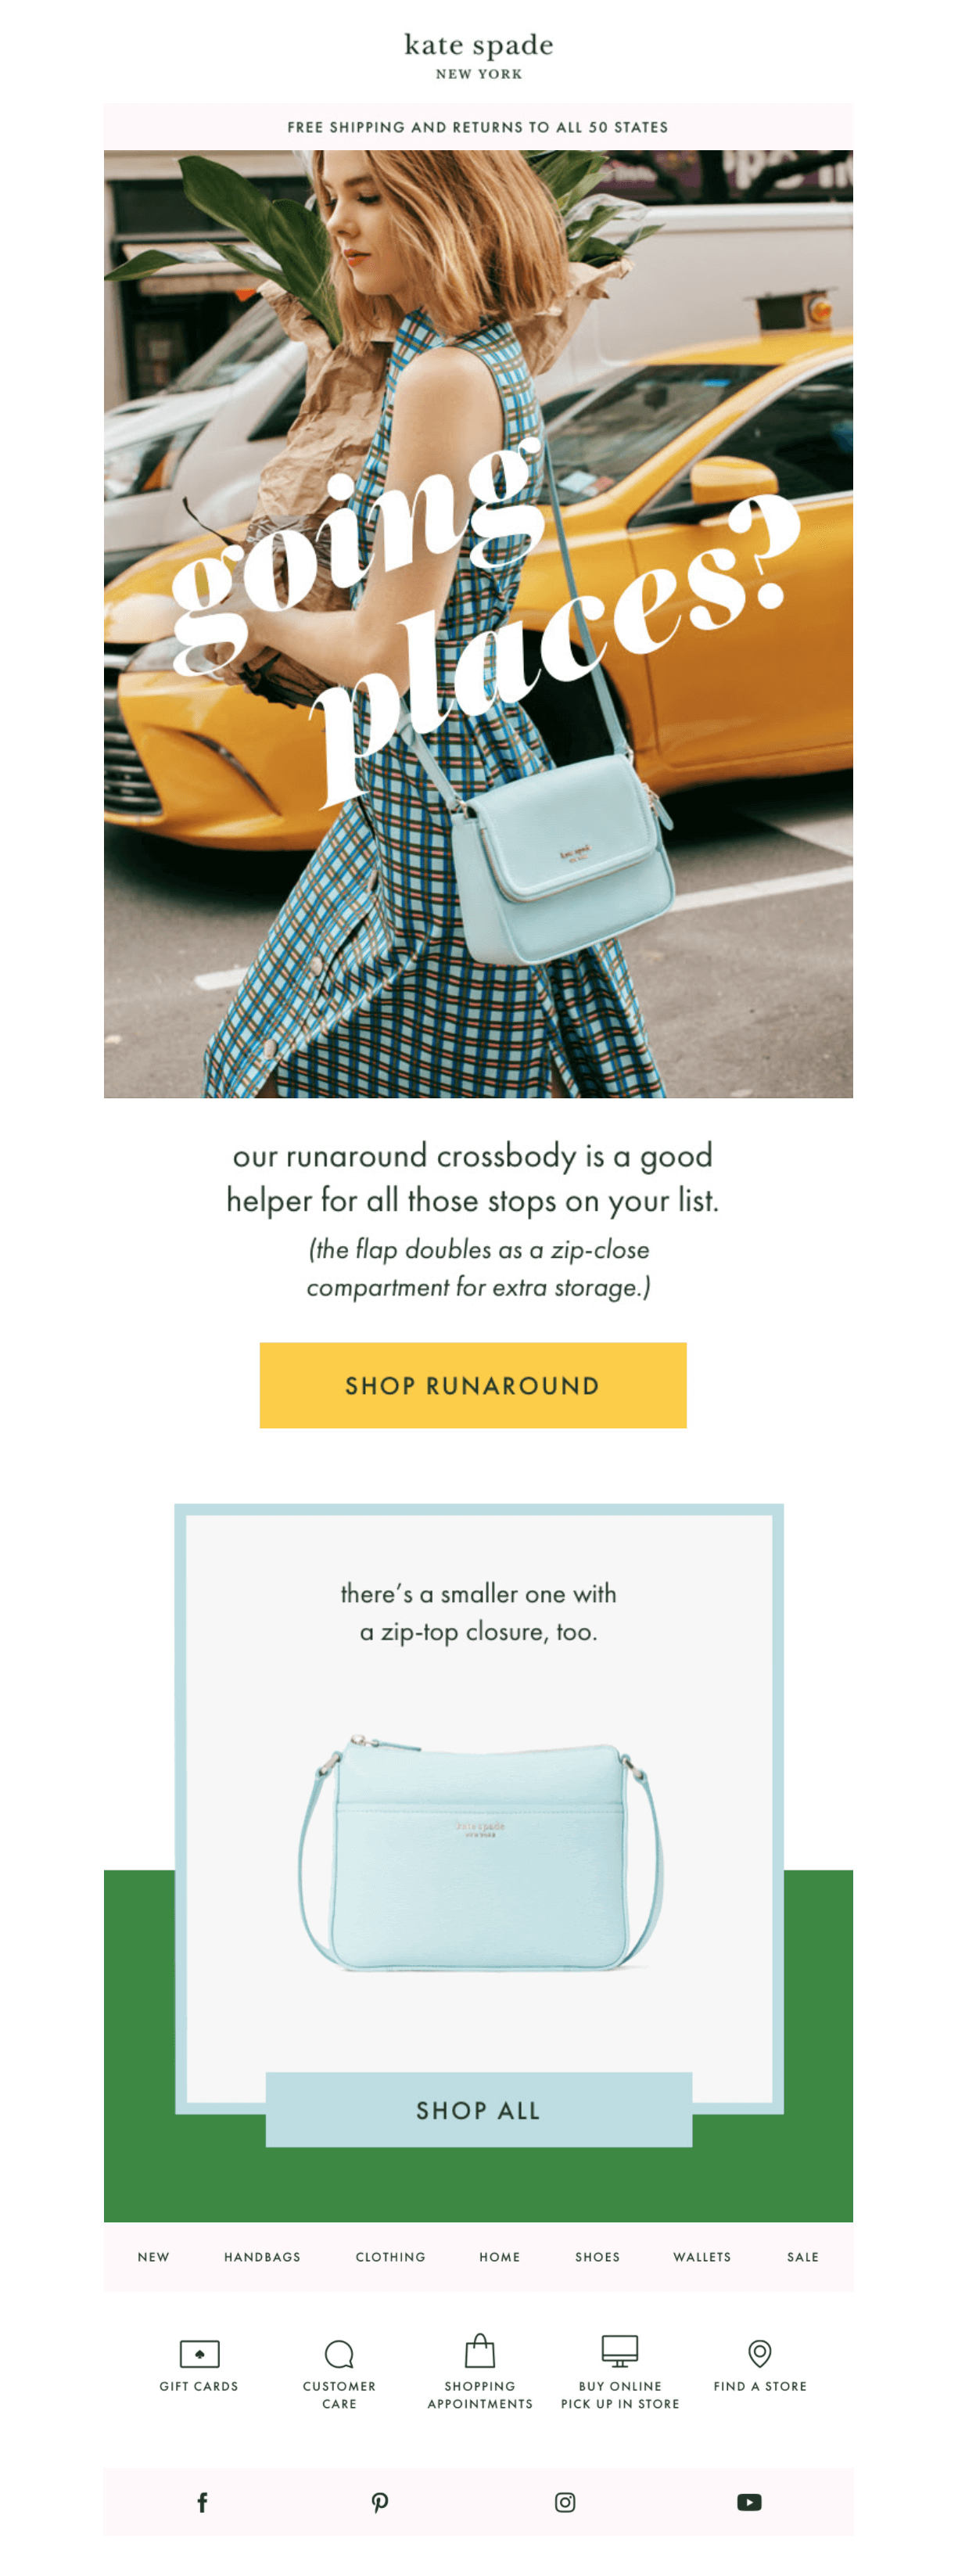 kate spade email campaign with GIF